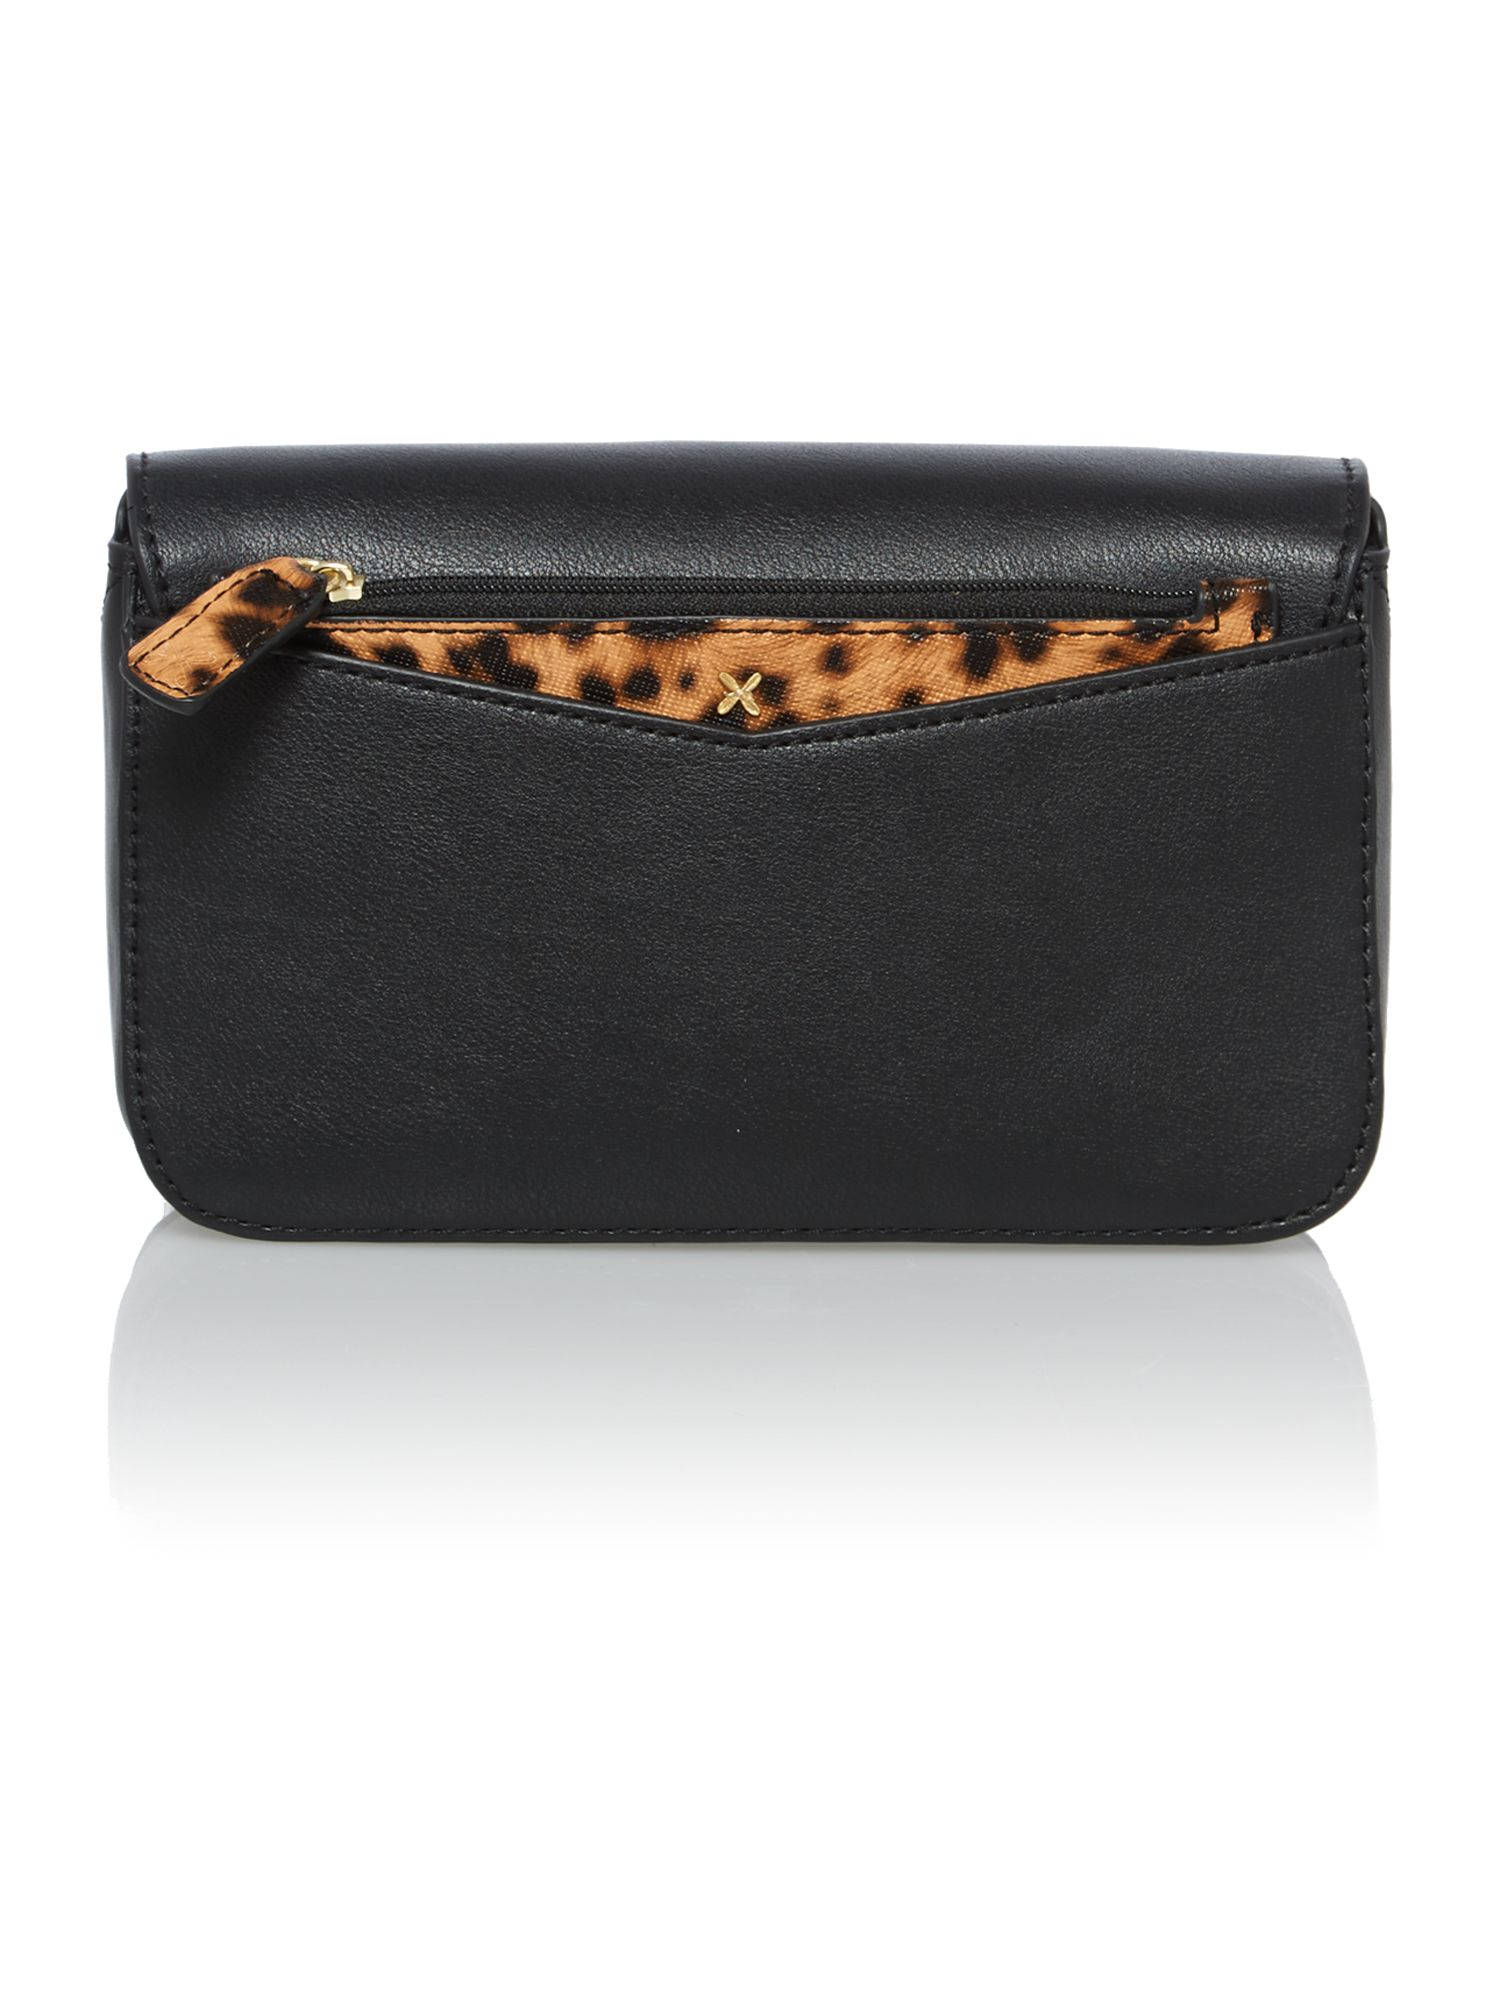 Perry black crossbody bag